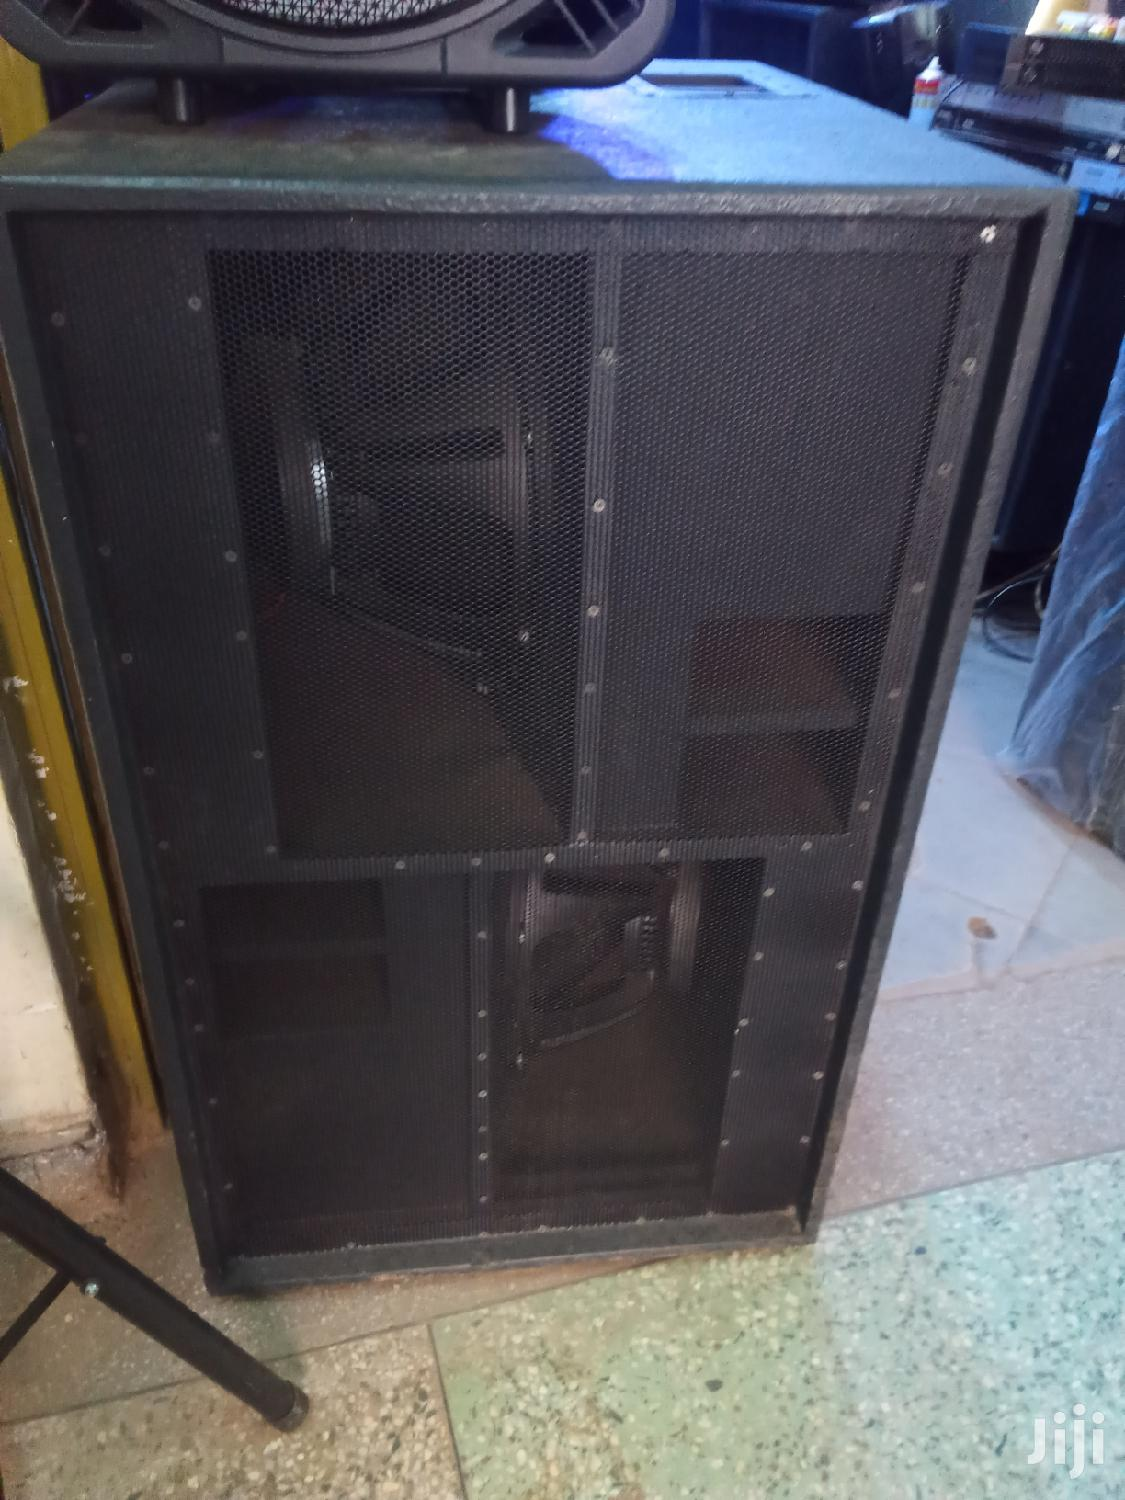 RCF Double Bass Beam | Audio & Music Equipment for sale in Kampala, Central Region, Uganda